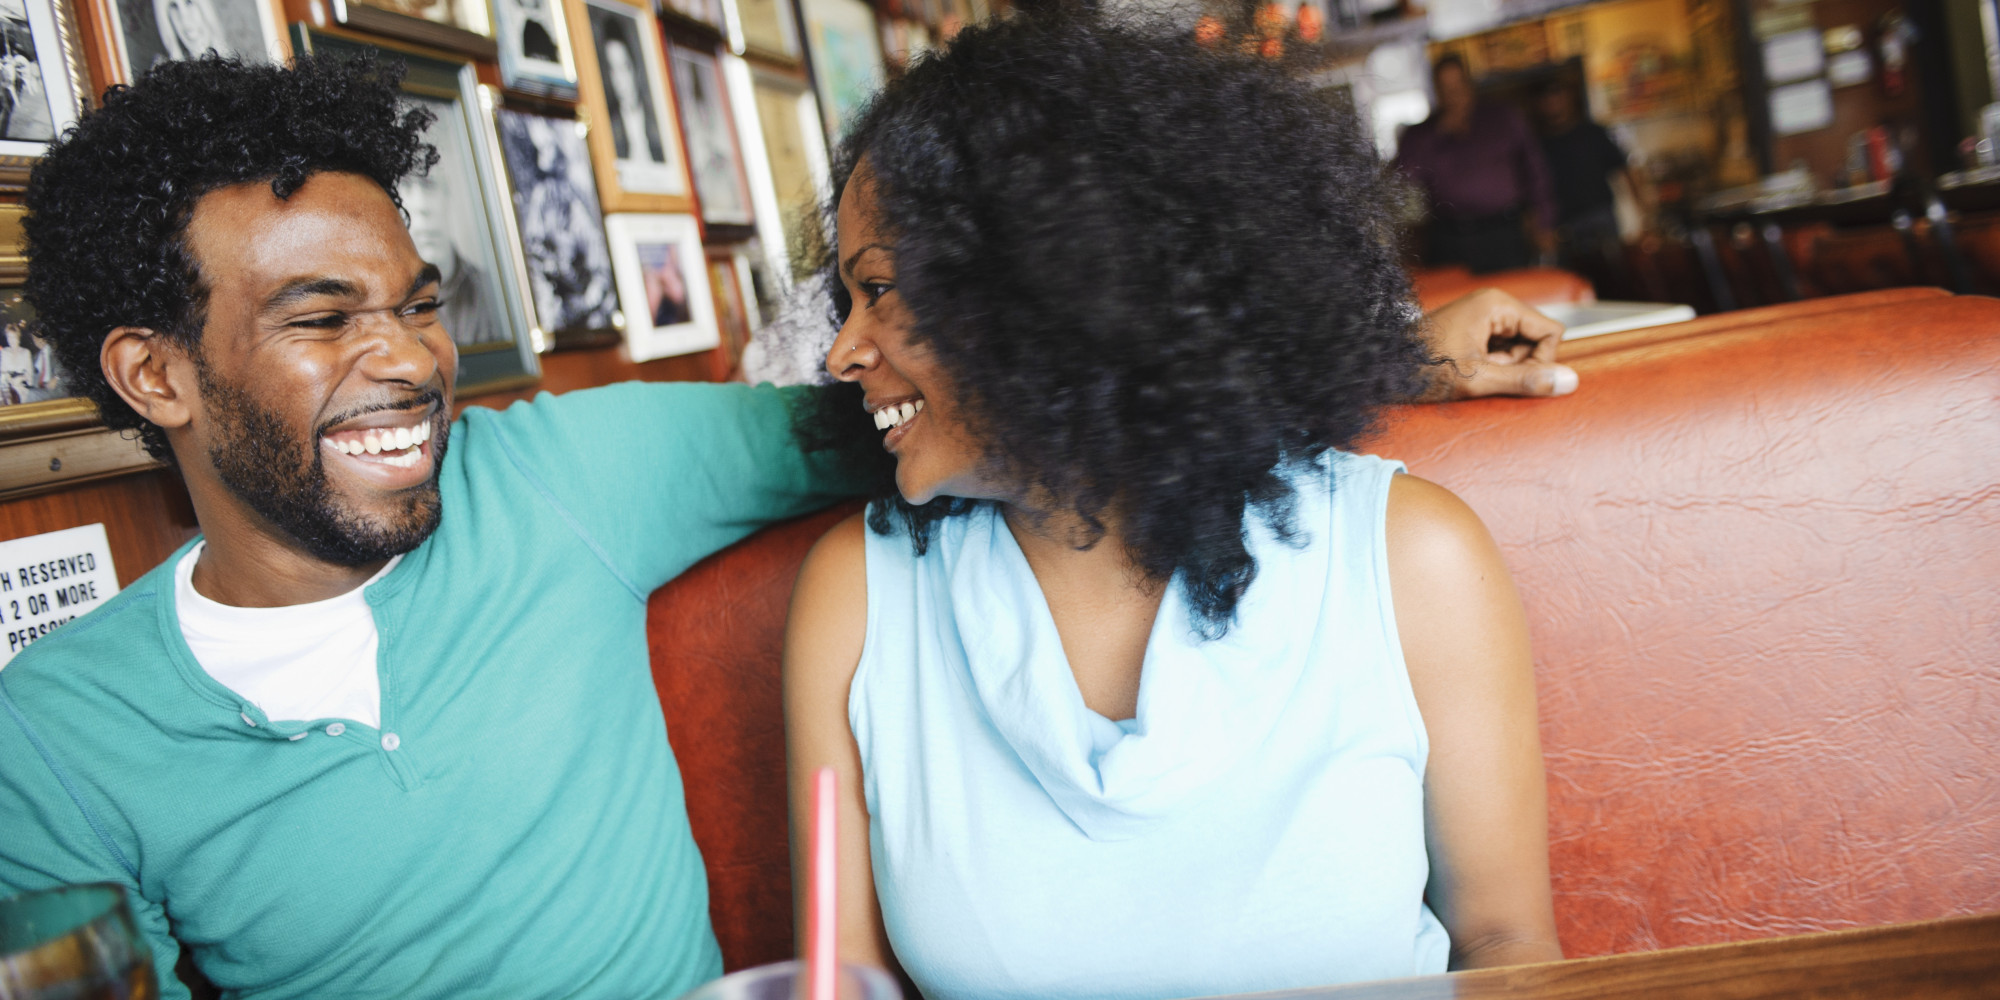 schneider black girls personals Black singles know blackpeoplemeetcom is the premier online destination for african american dating to meet black men or black women in your area, sign up today free.